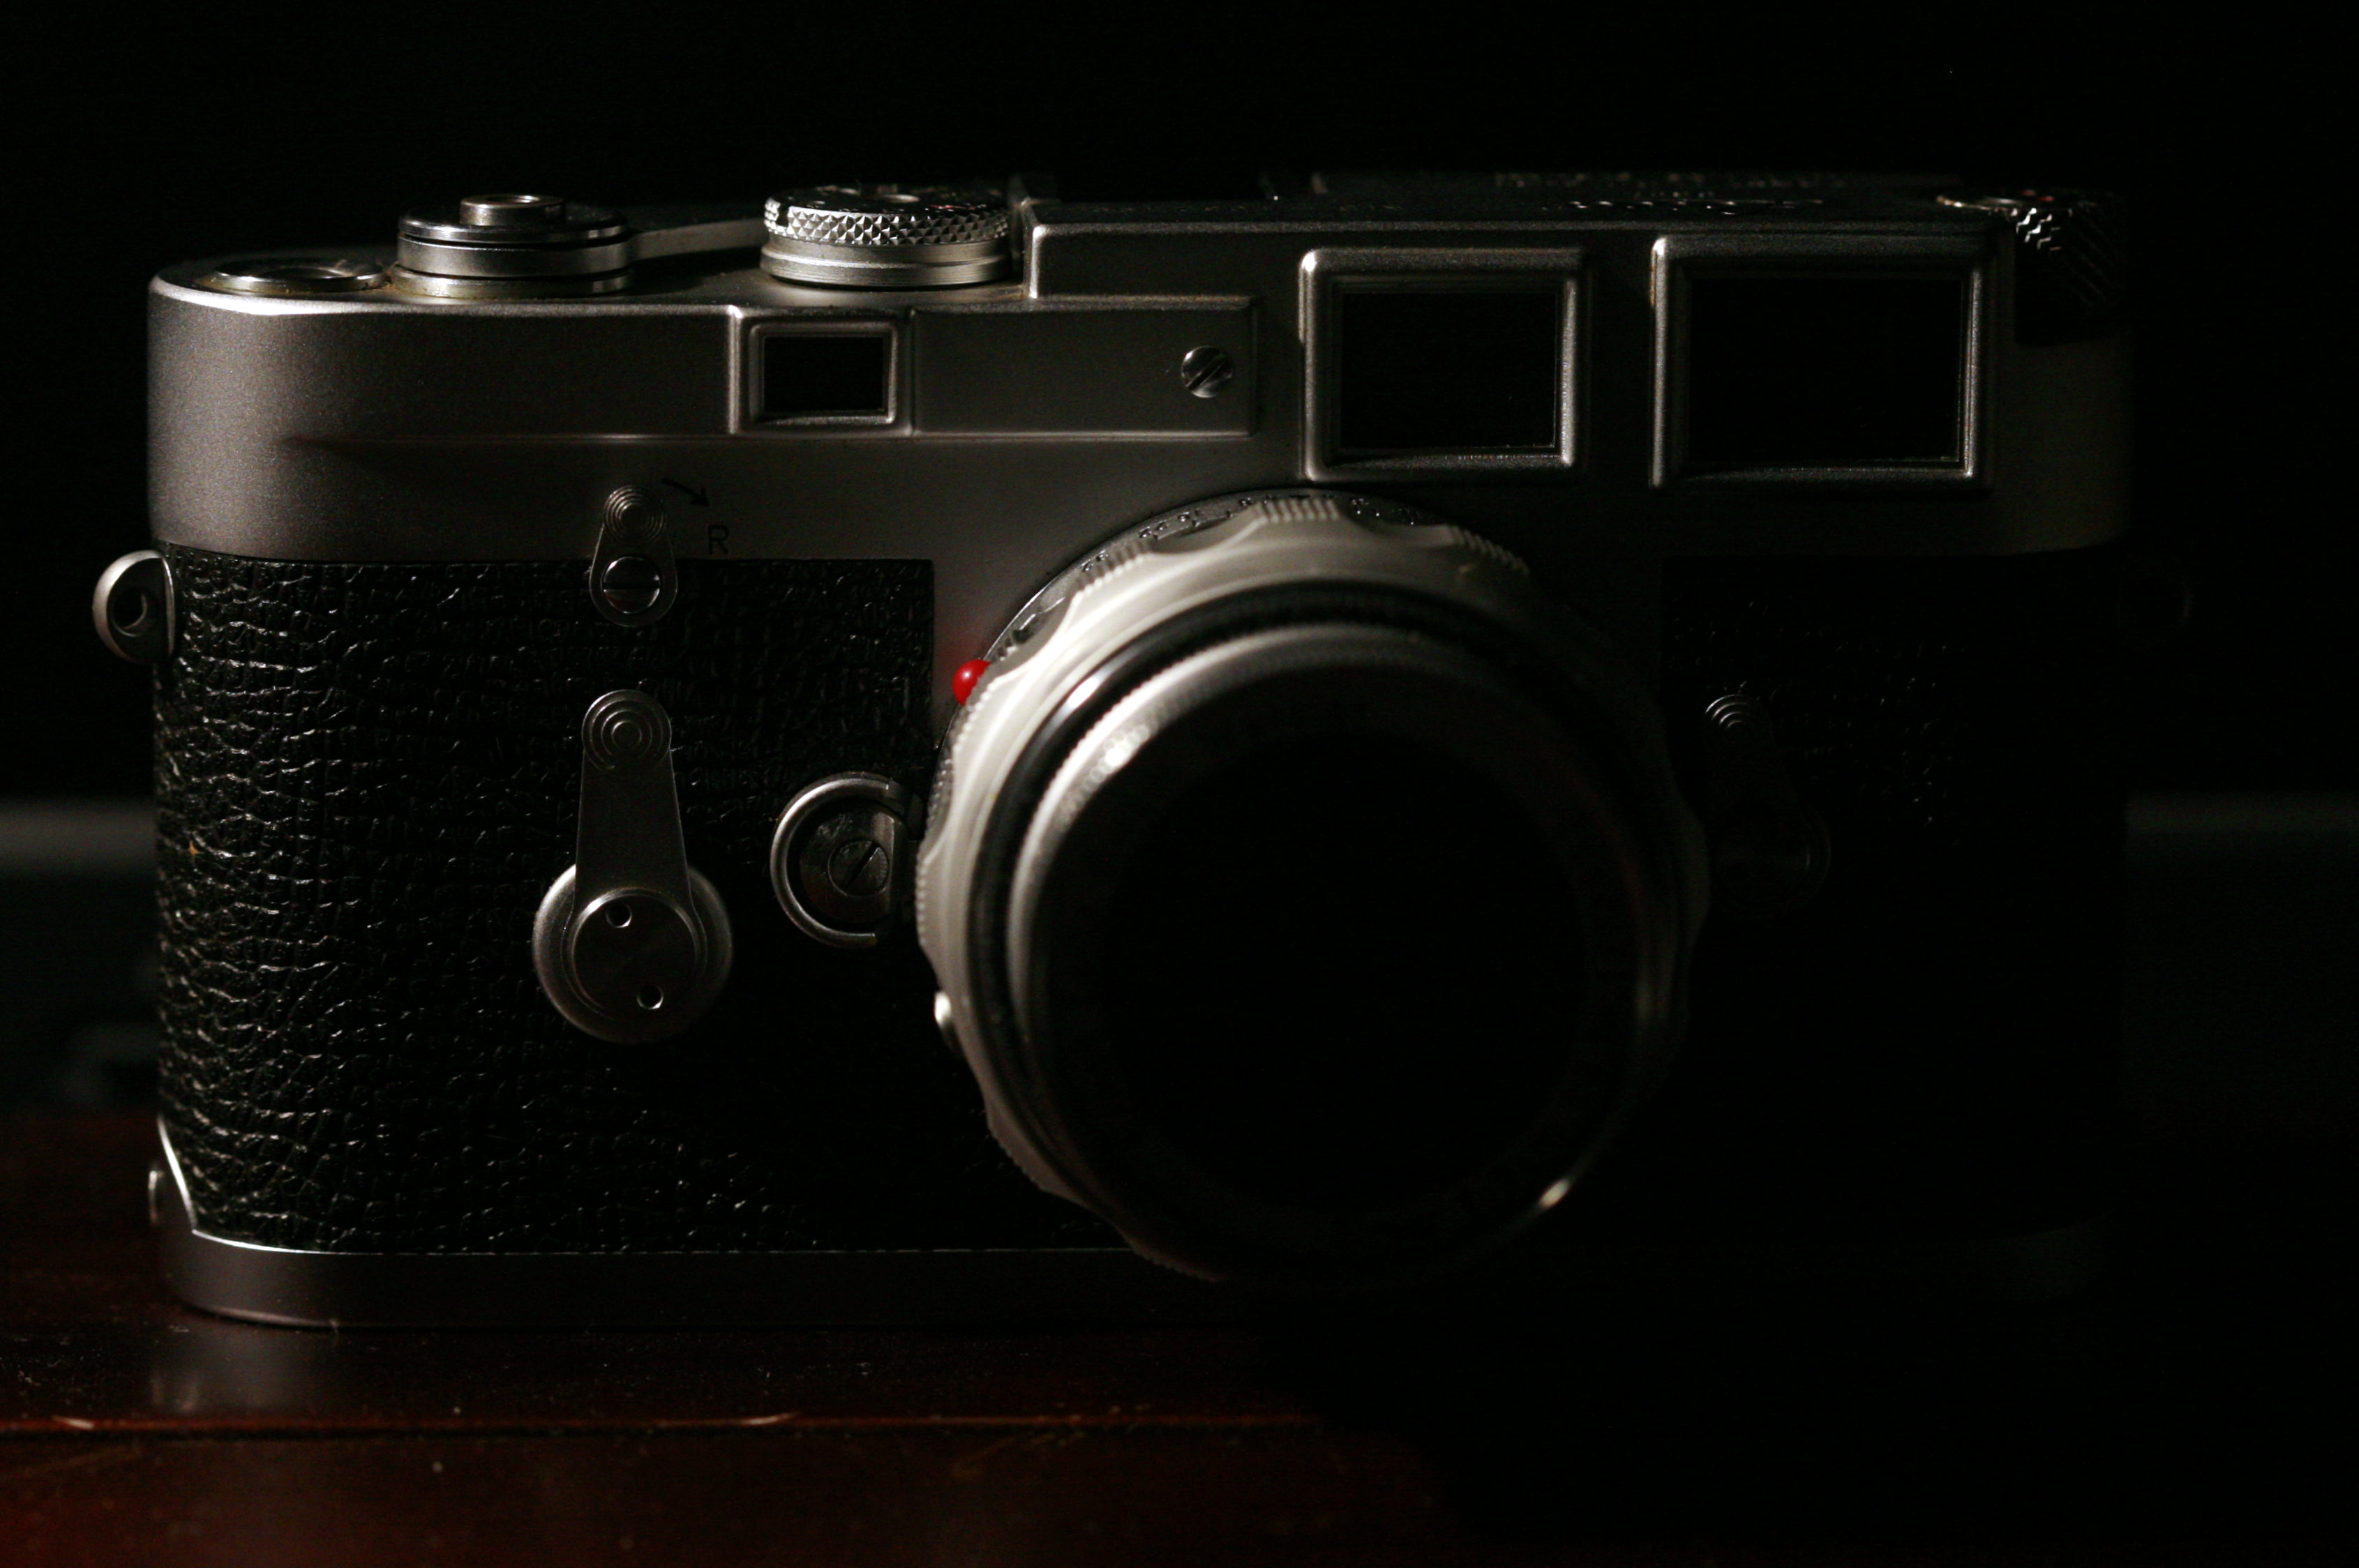 File:Leica M3 low-key mg 3649 - Wikimedia Commons